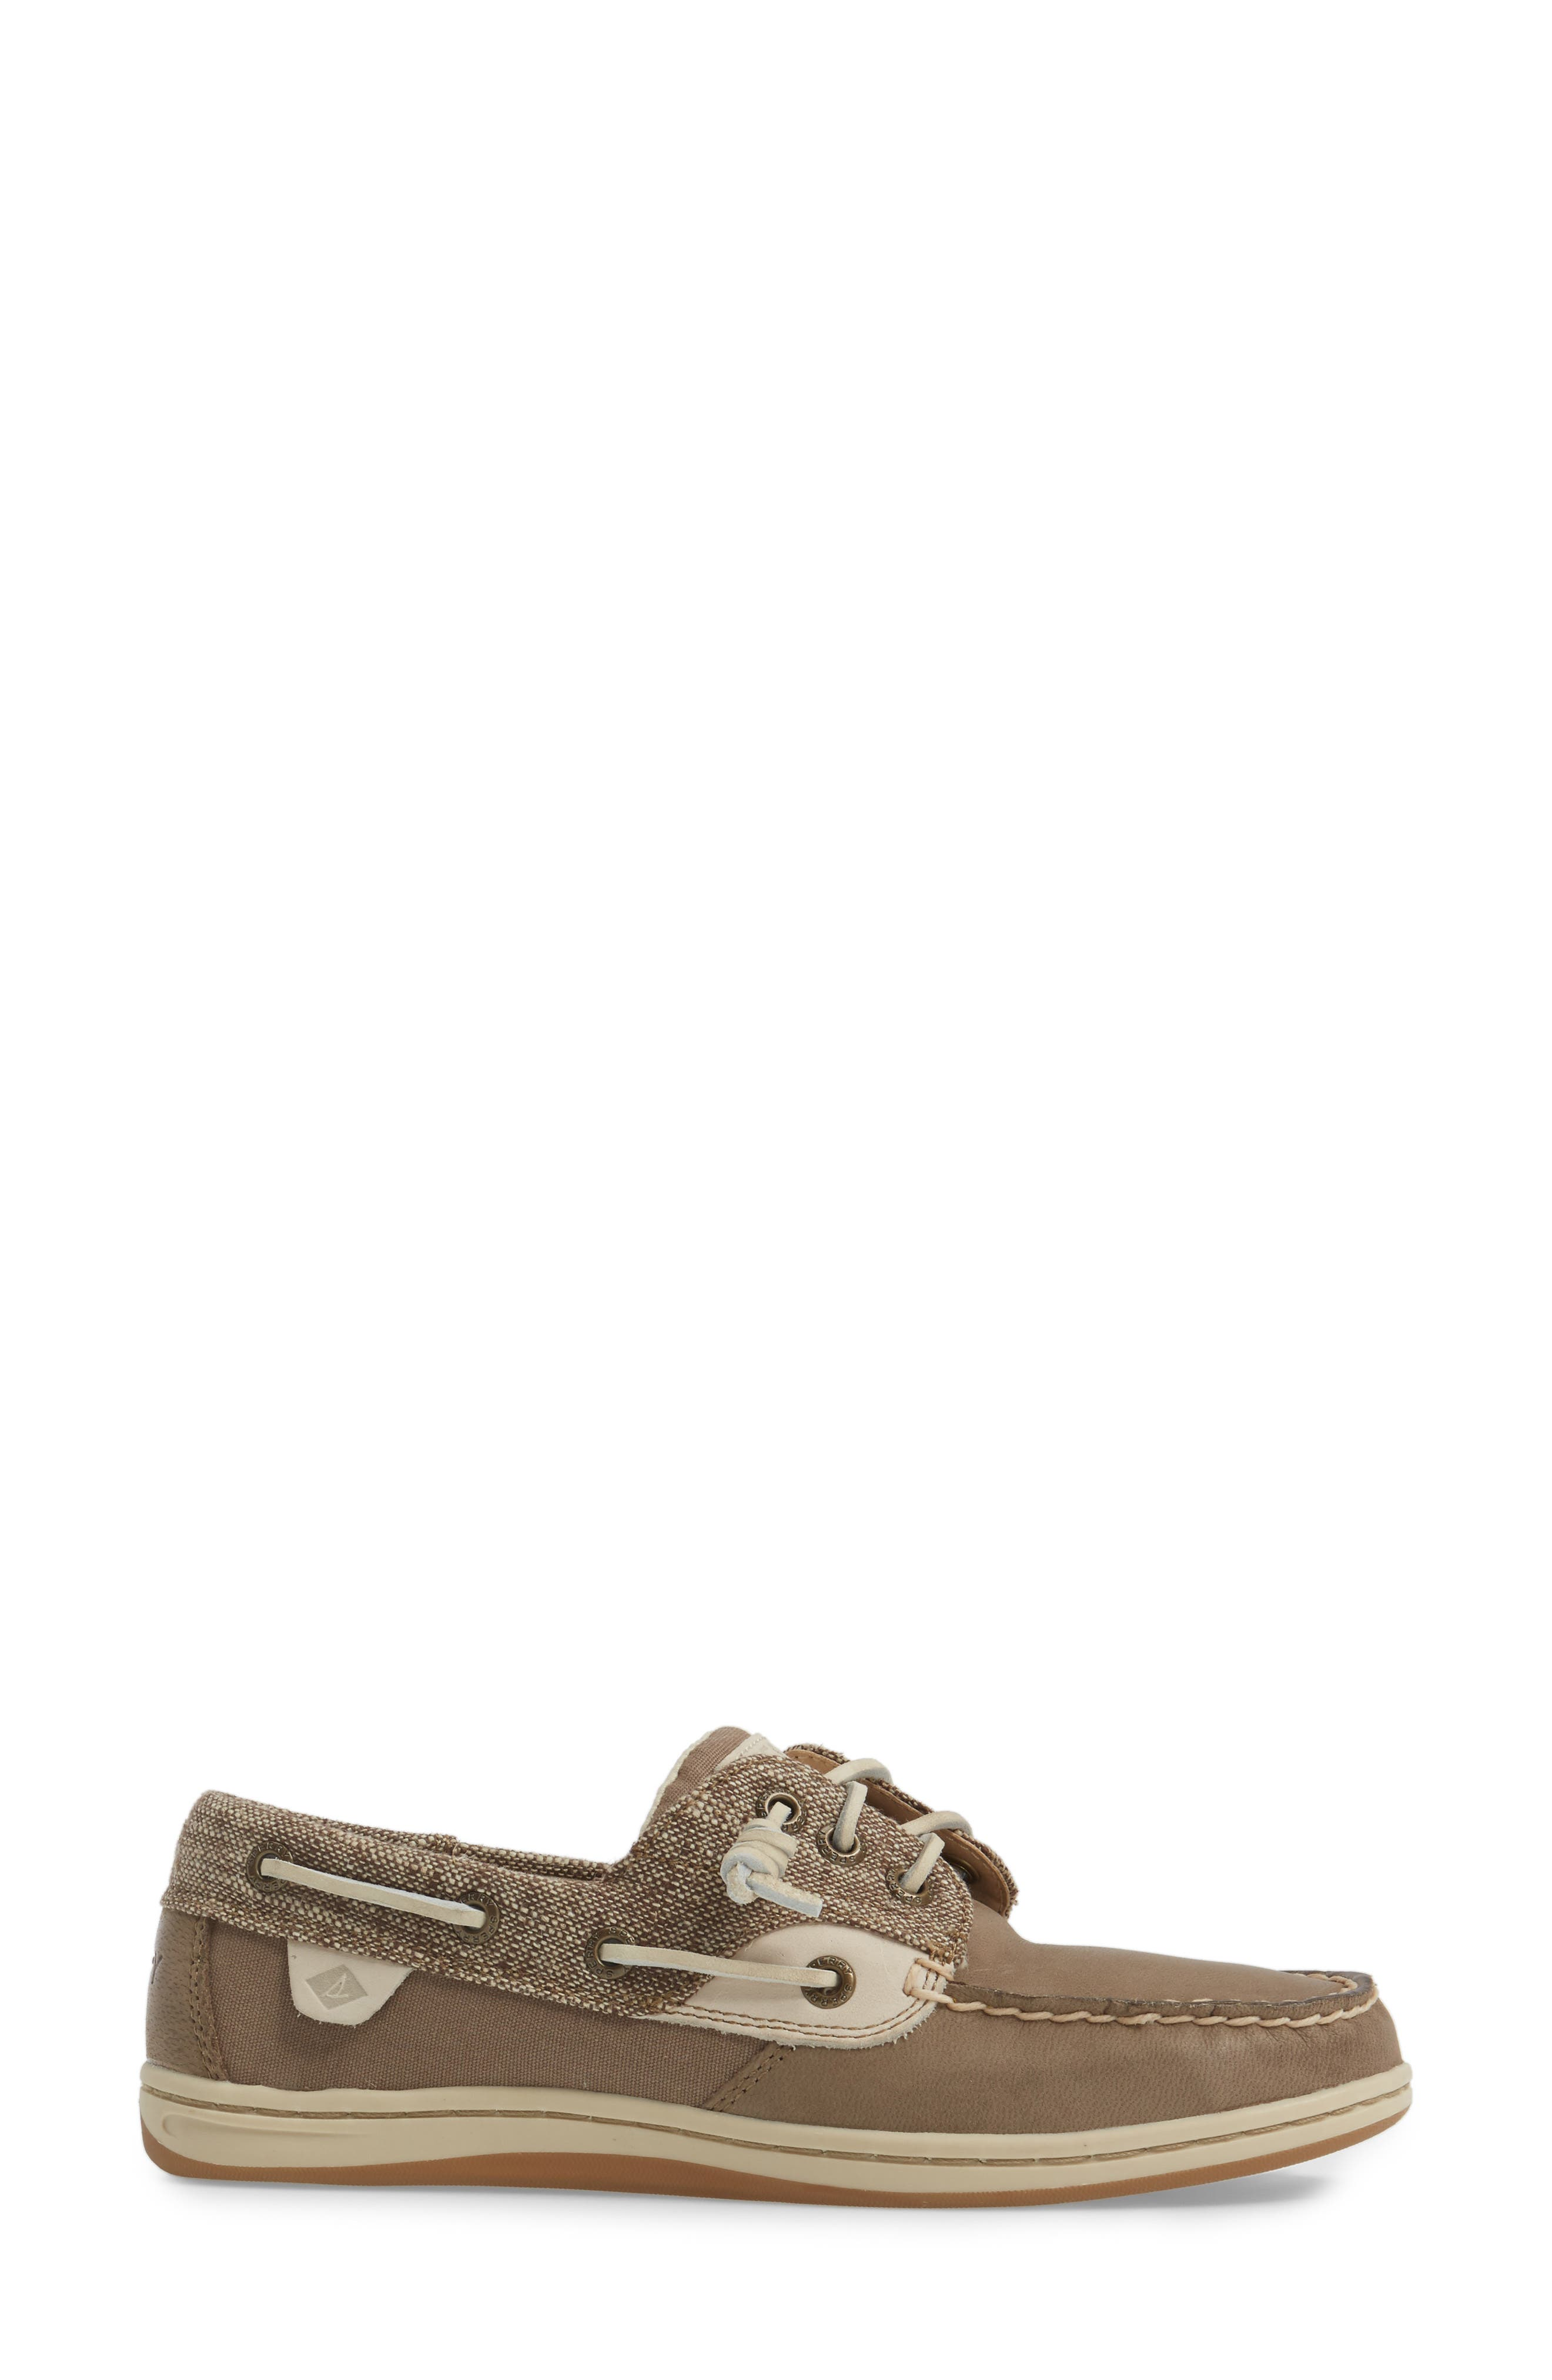 Alternate Image 3  - Sperry 'Songfish' Boat Shoe (Women)